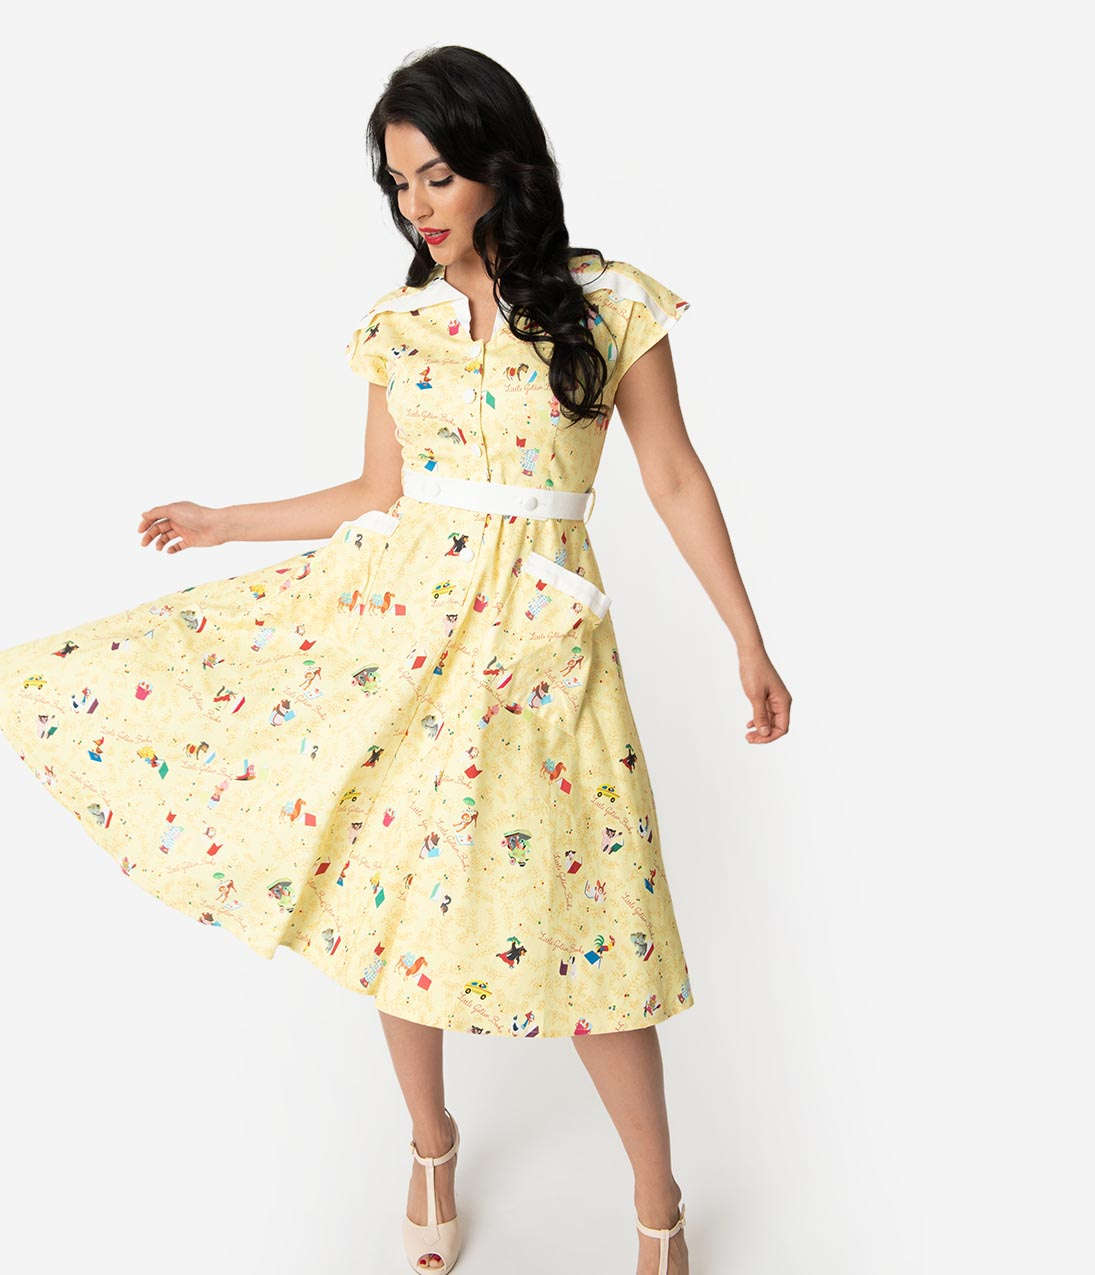 Swing Dance Clothing You Can Dance In Little Golden Books X Unique Vintage Yellow Print Hedda Swing Dress $148.00 AT vintagedancer.com